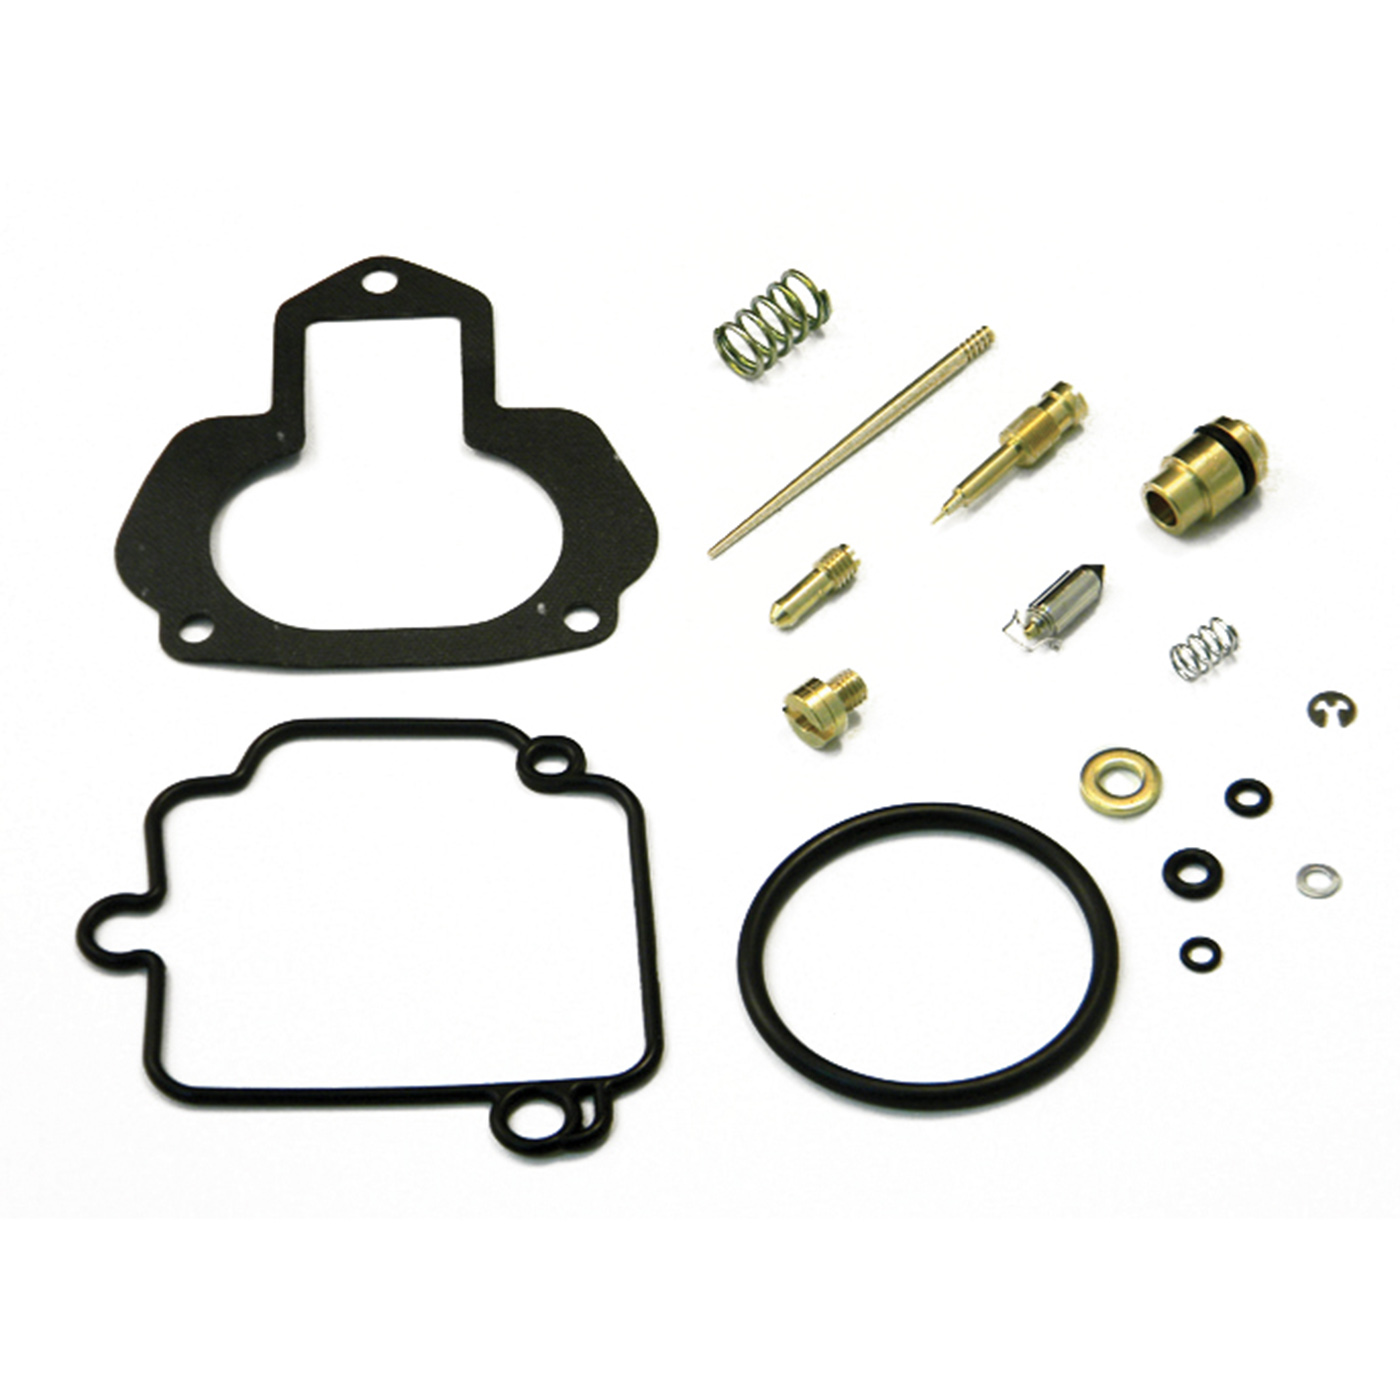 2004-2006 Yamaha 350 Bruin 2x4 4x4 Carb Carburetor Repair Kit Yfm350 03-321